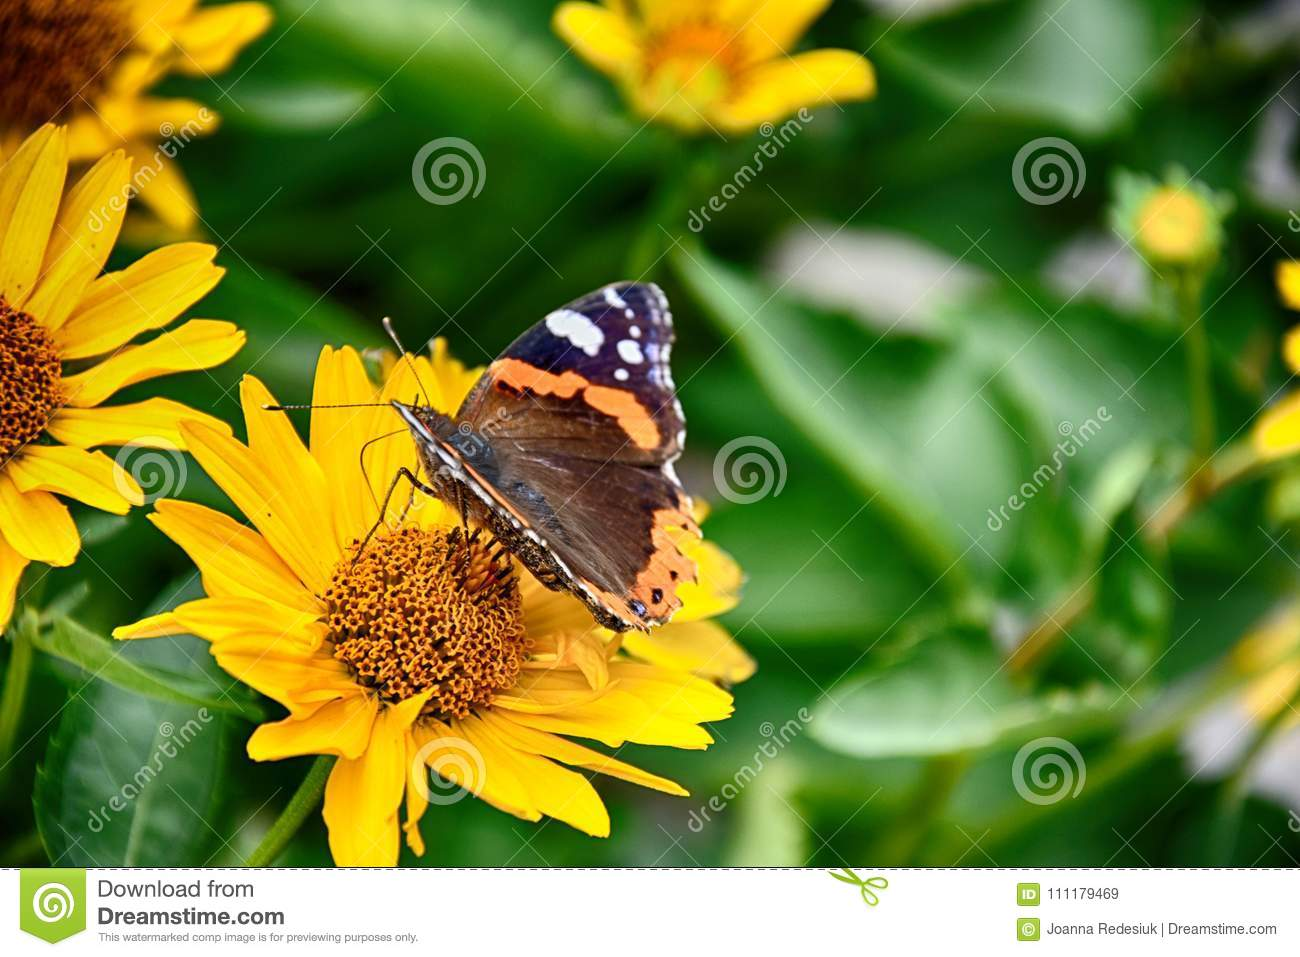 Dark yellow flowers growing on a green meadow and a butterfly o download dark yellow flowers growing on a green meadow and a butterfly o stock image mightylinksfo